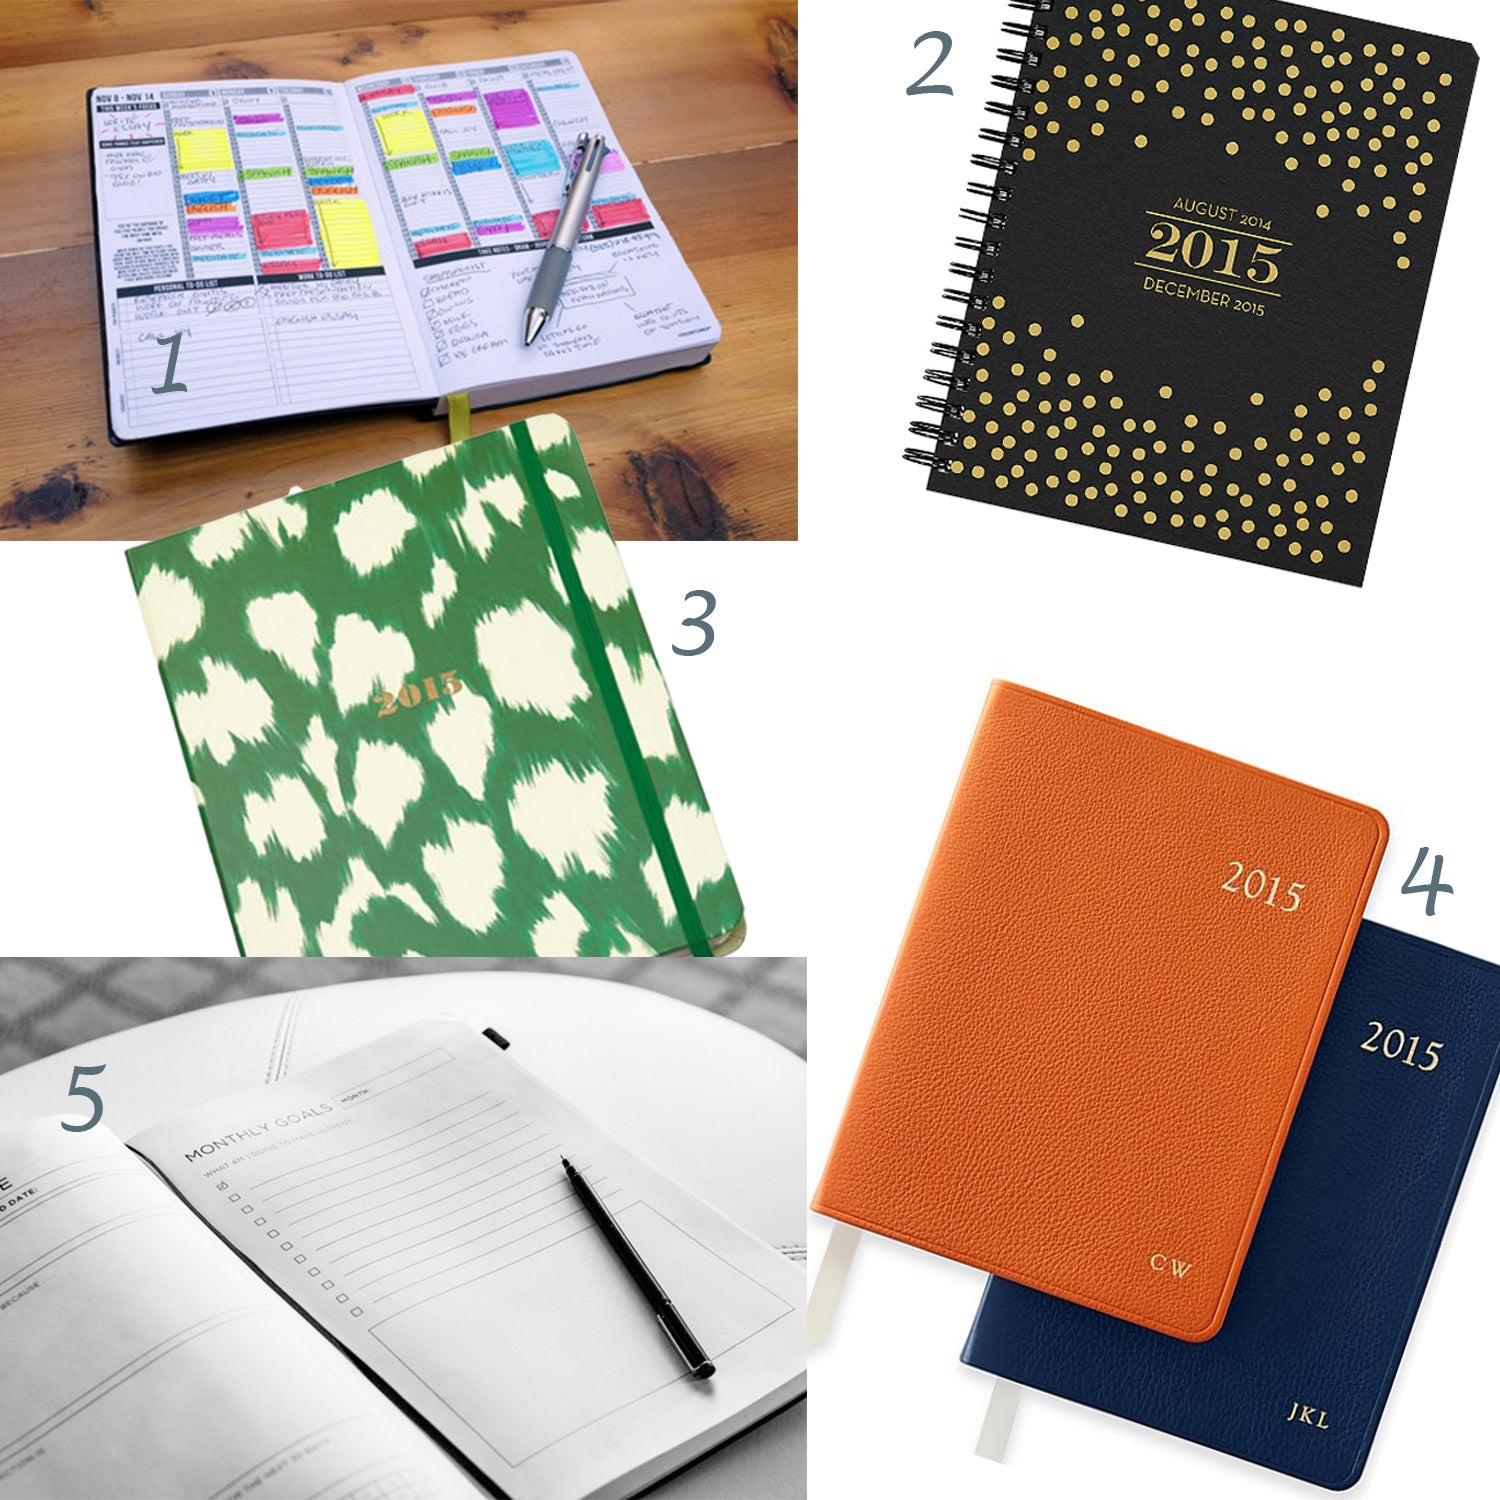 passion planner, weekly planner, papersource planner, kate spade calendar, kate spade planner,  mark and graham calendar, popforms, spark notebooks, 2015 planners, best 2015 planners